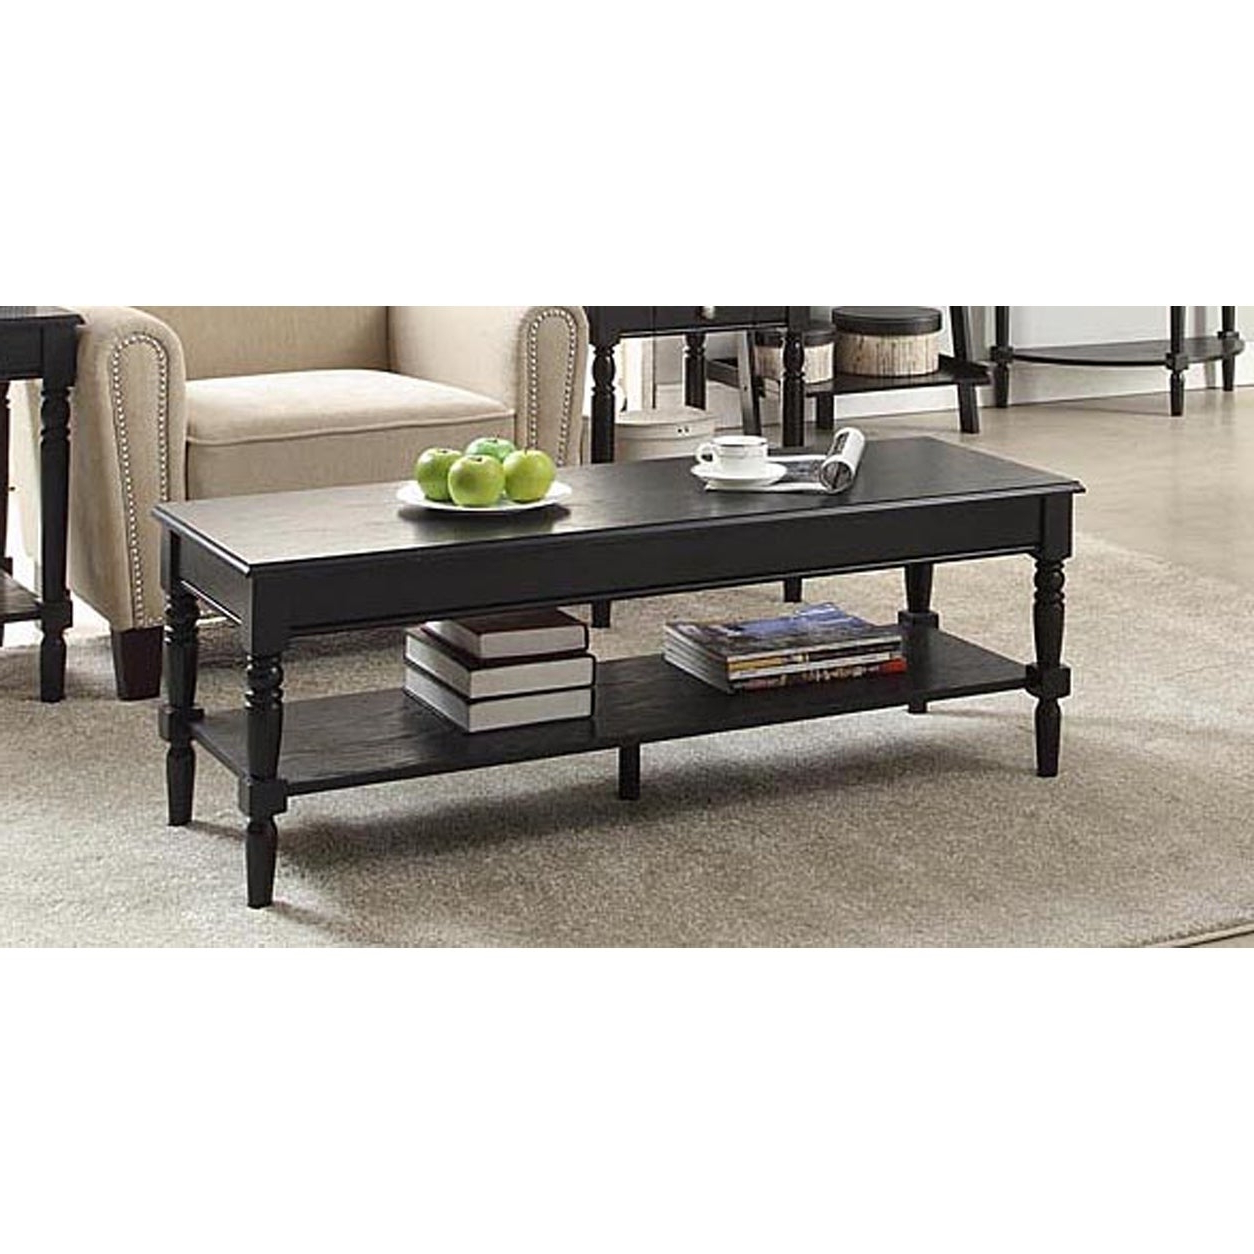 Copper Grove Coffee Tables – All About Coffee Beans For Most Recent Copper Grove Lantana Coffee Tables (View 1 of 20)